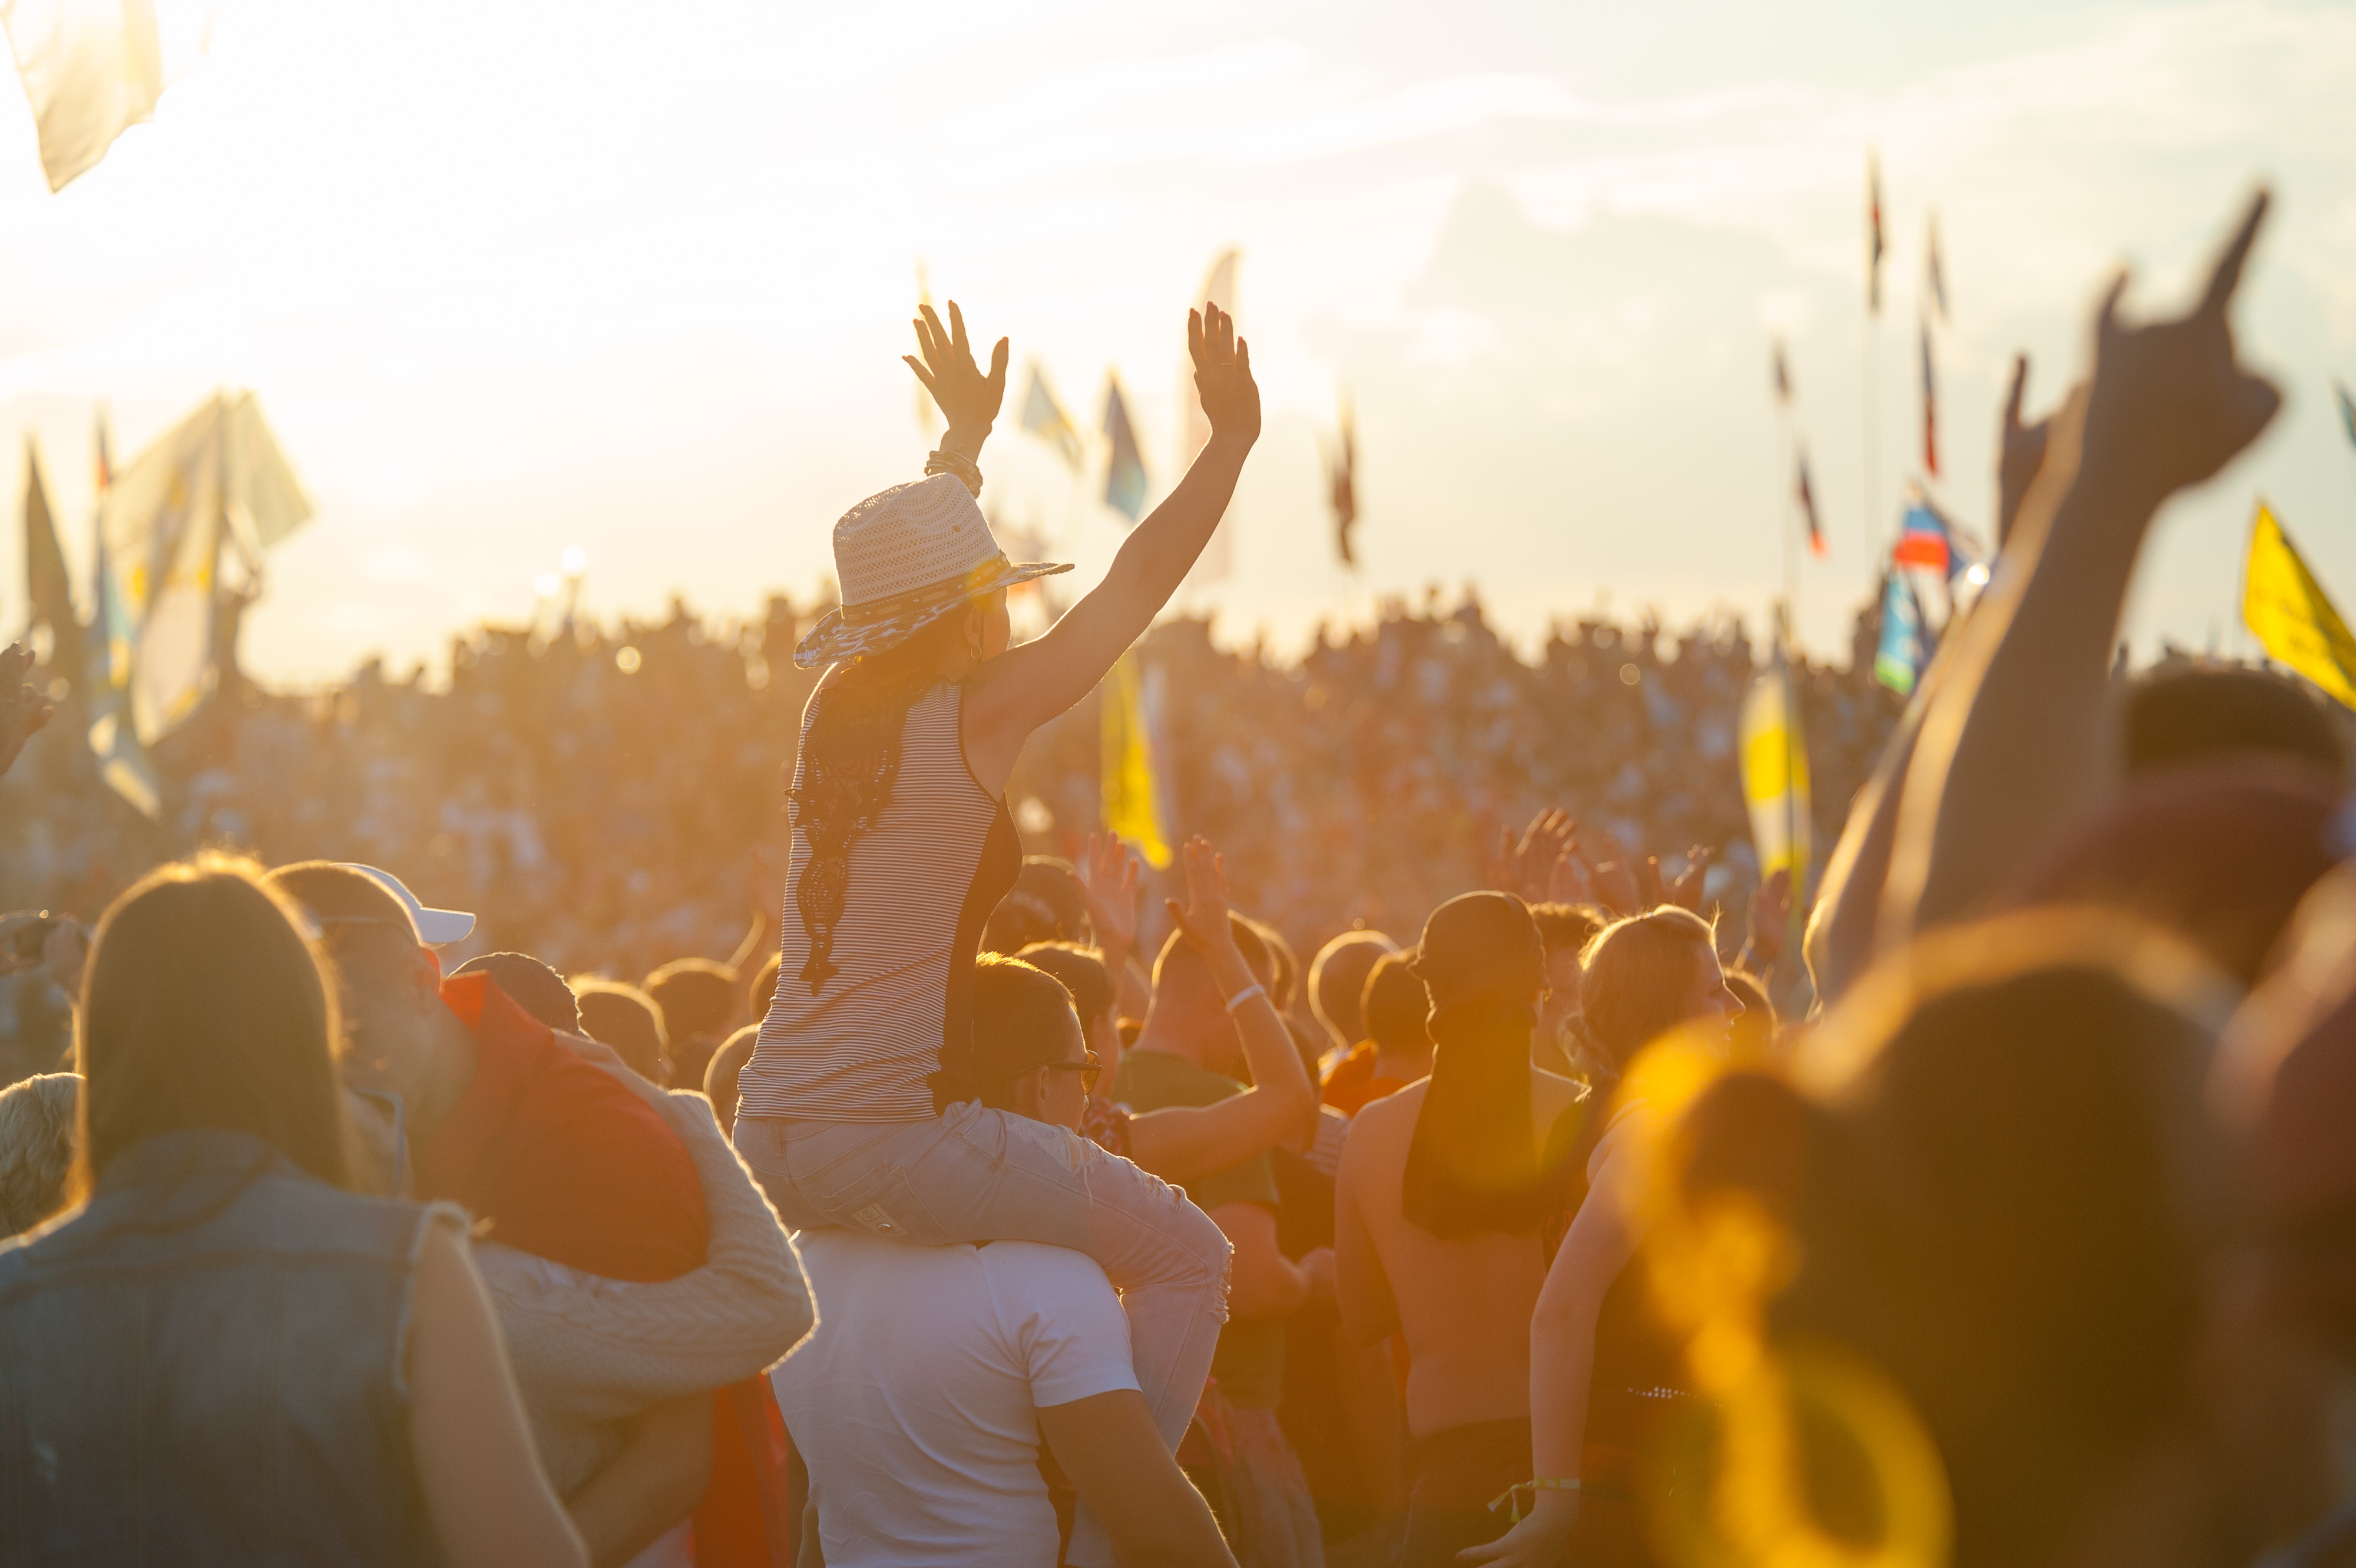 The Top 5 Music Festivals Every Female Traveler Should Attend